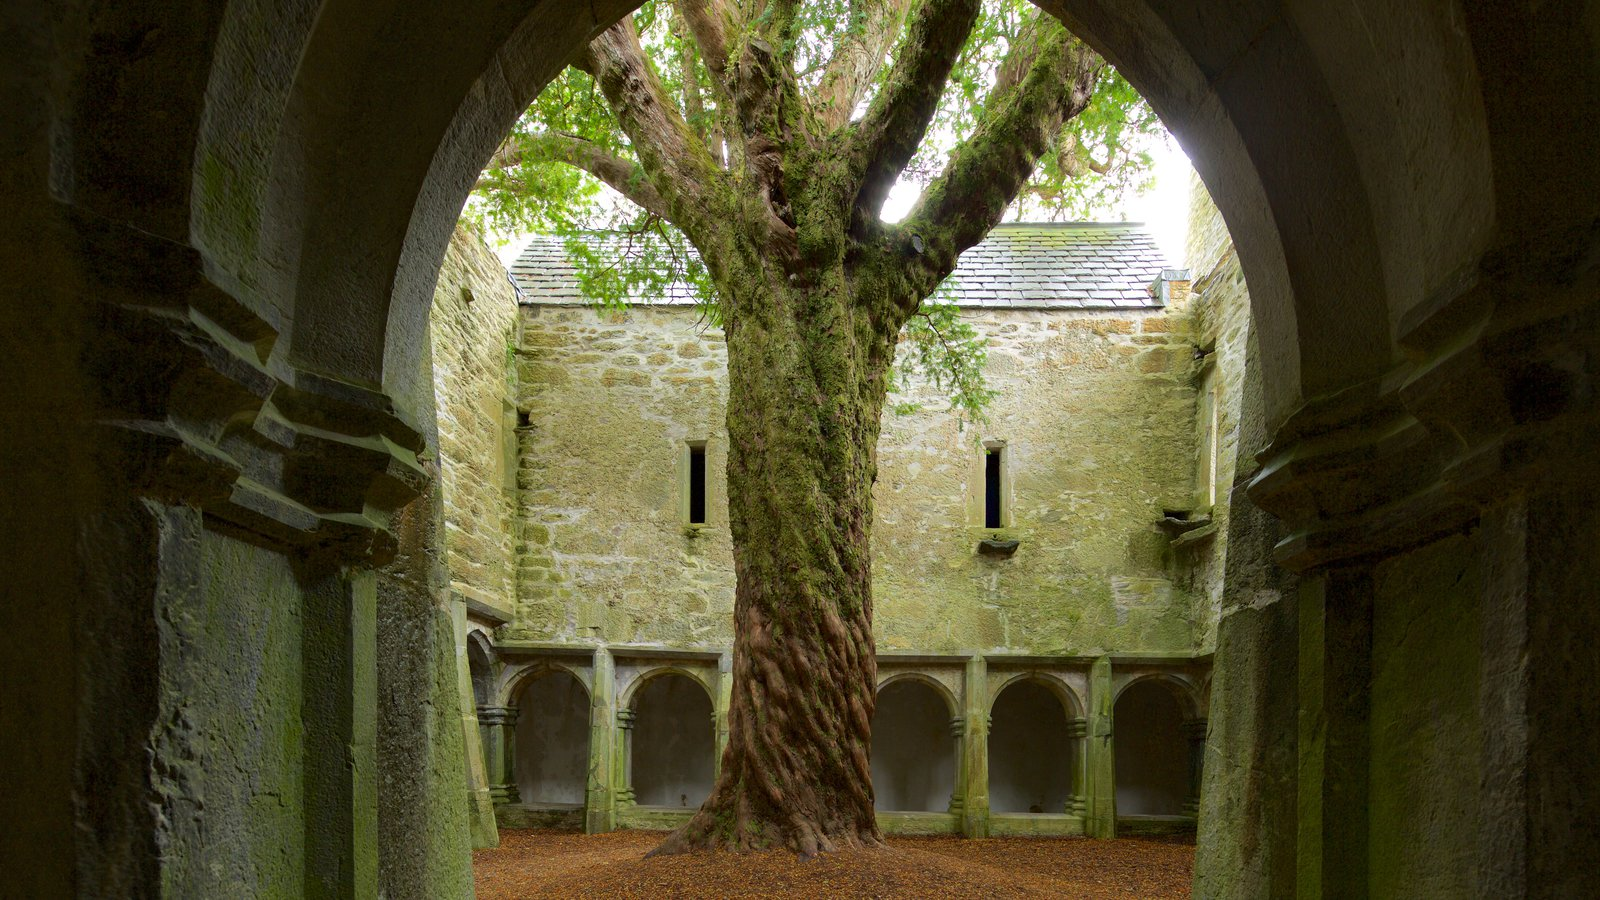 Muckross Abbey showing heritage elements, heritage architecture and chateau or palace